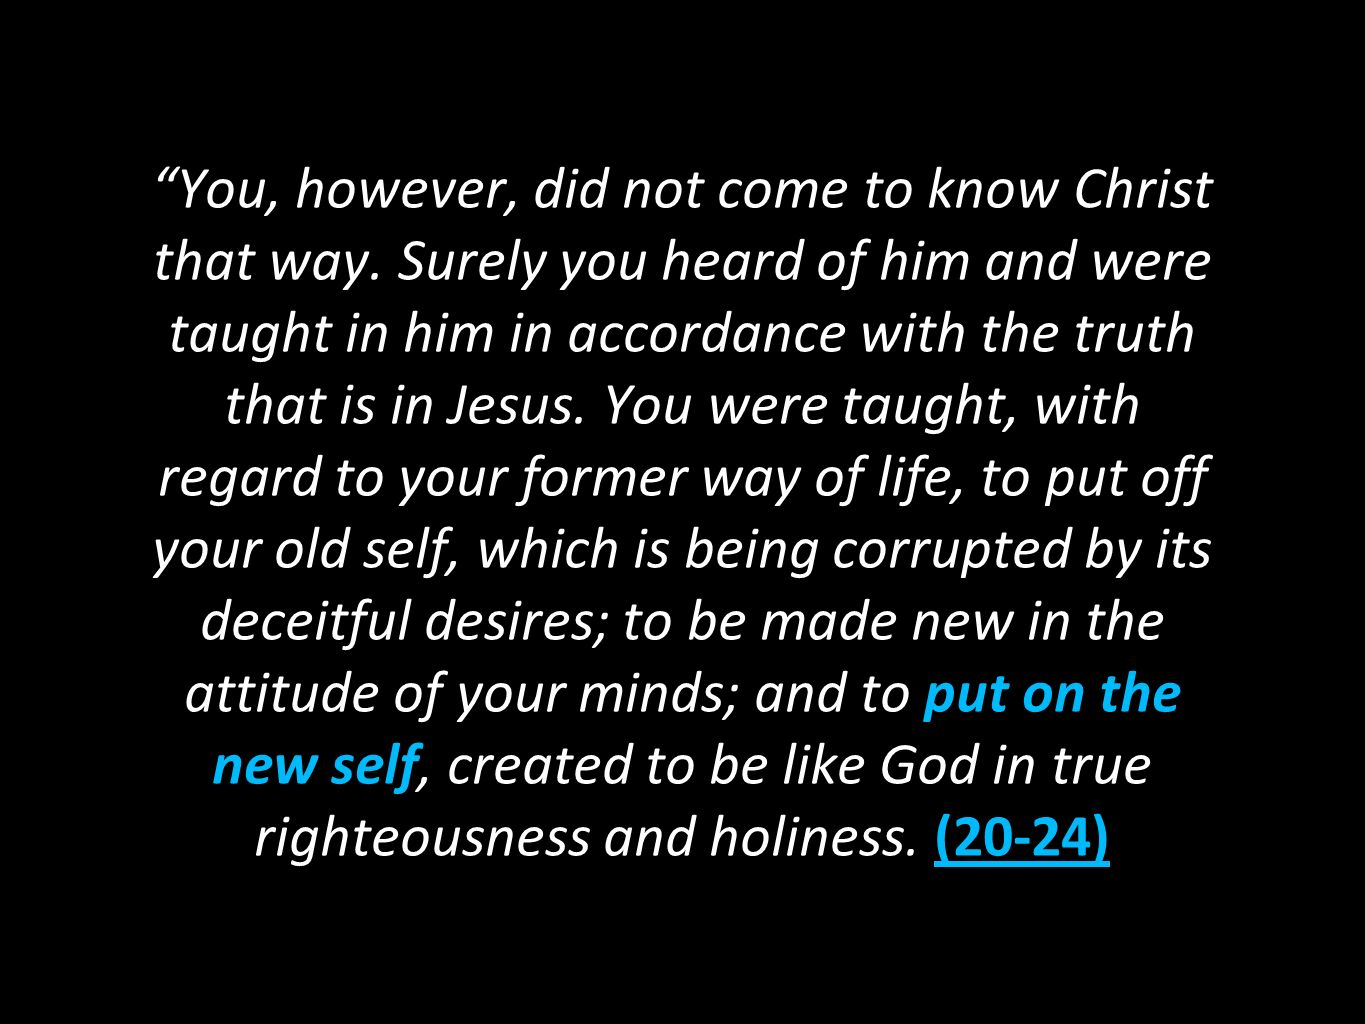 You, however, did not come to know Christ that way. Surely you heard of him and were taught in him in accordance with the truth that is in Jesus. You